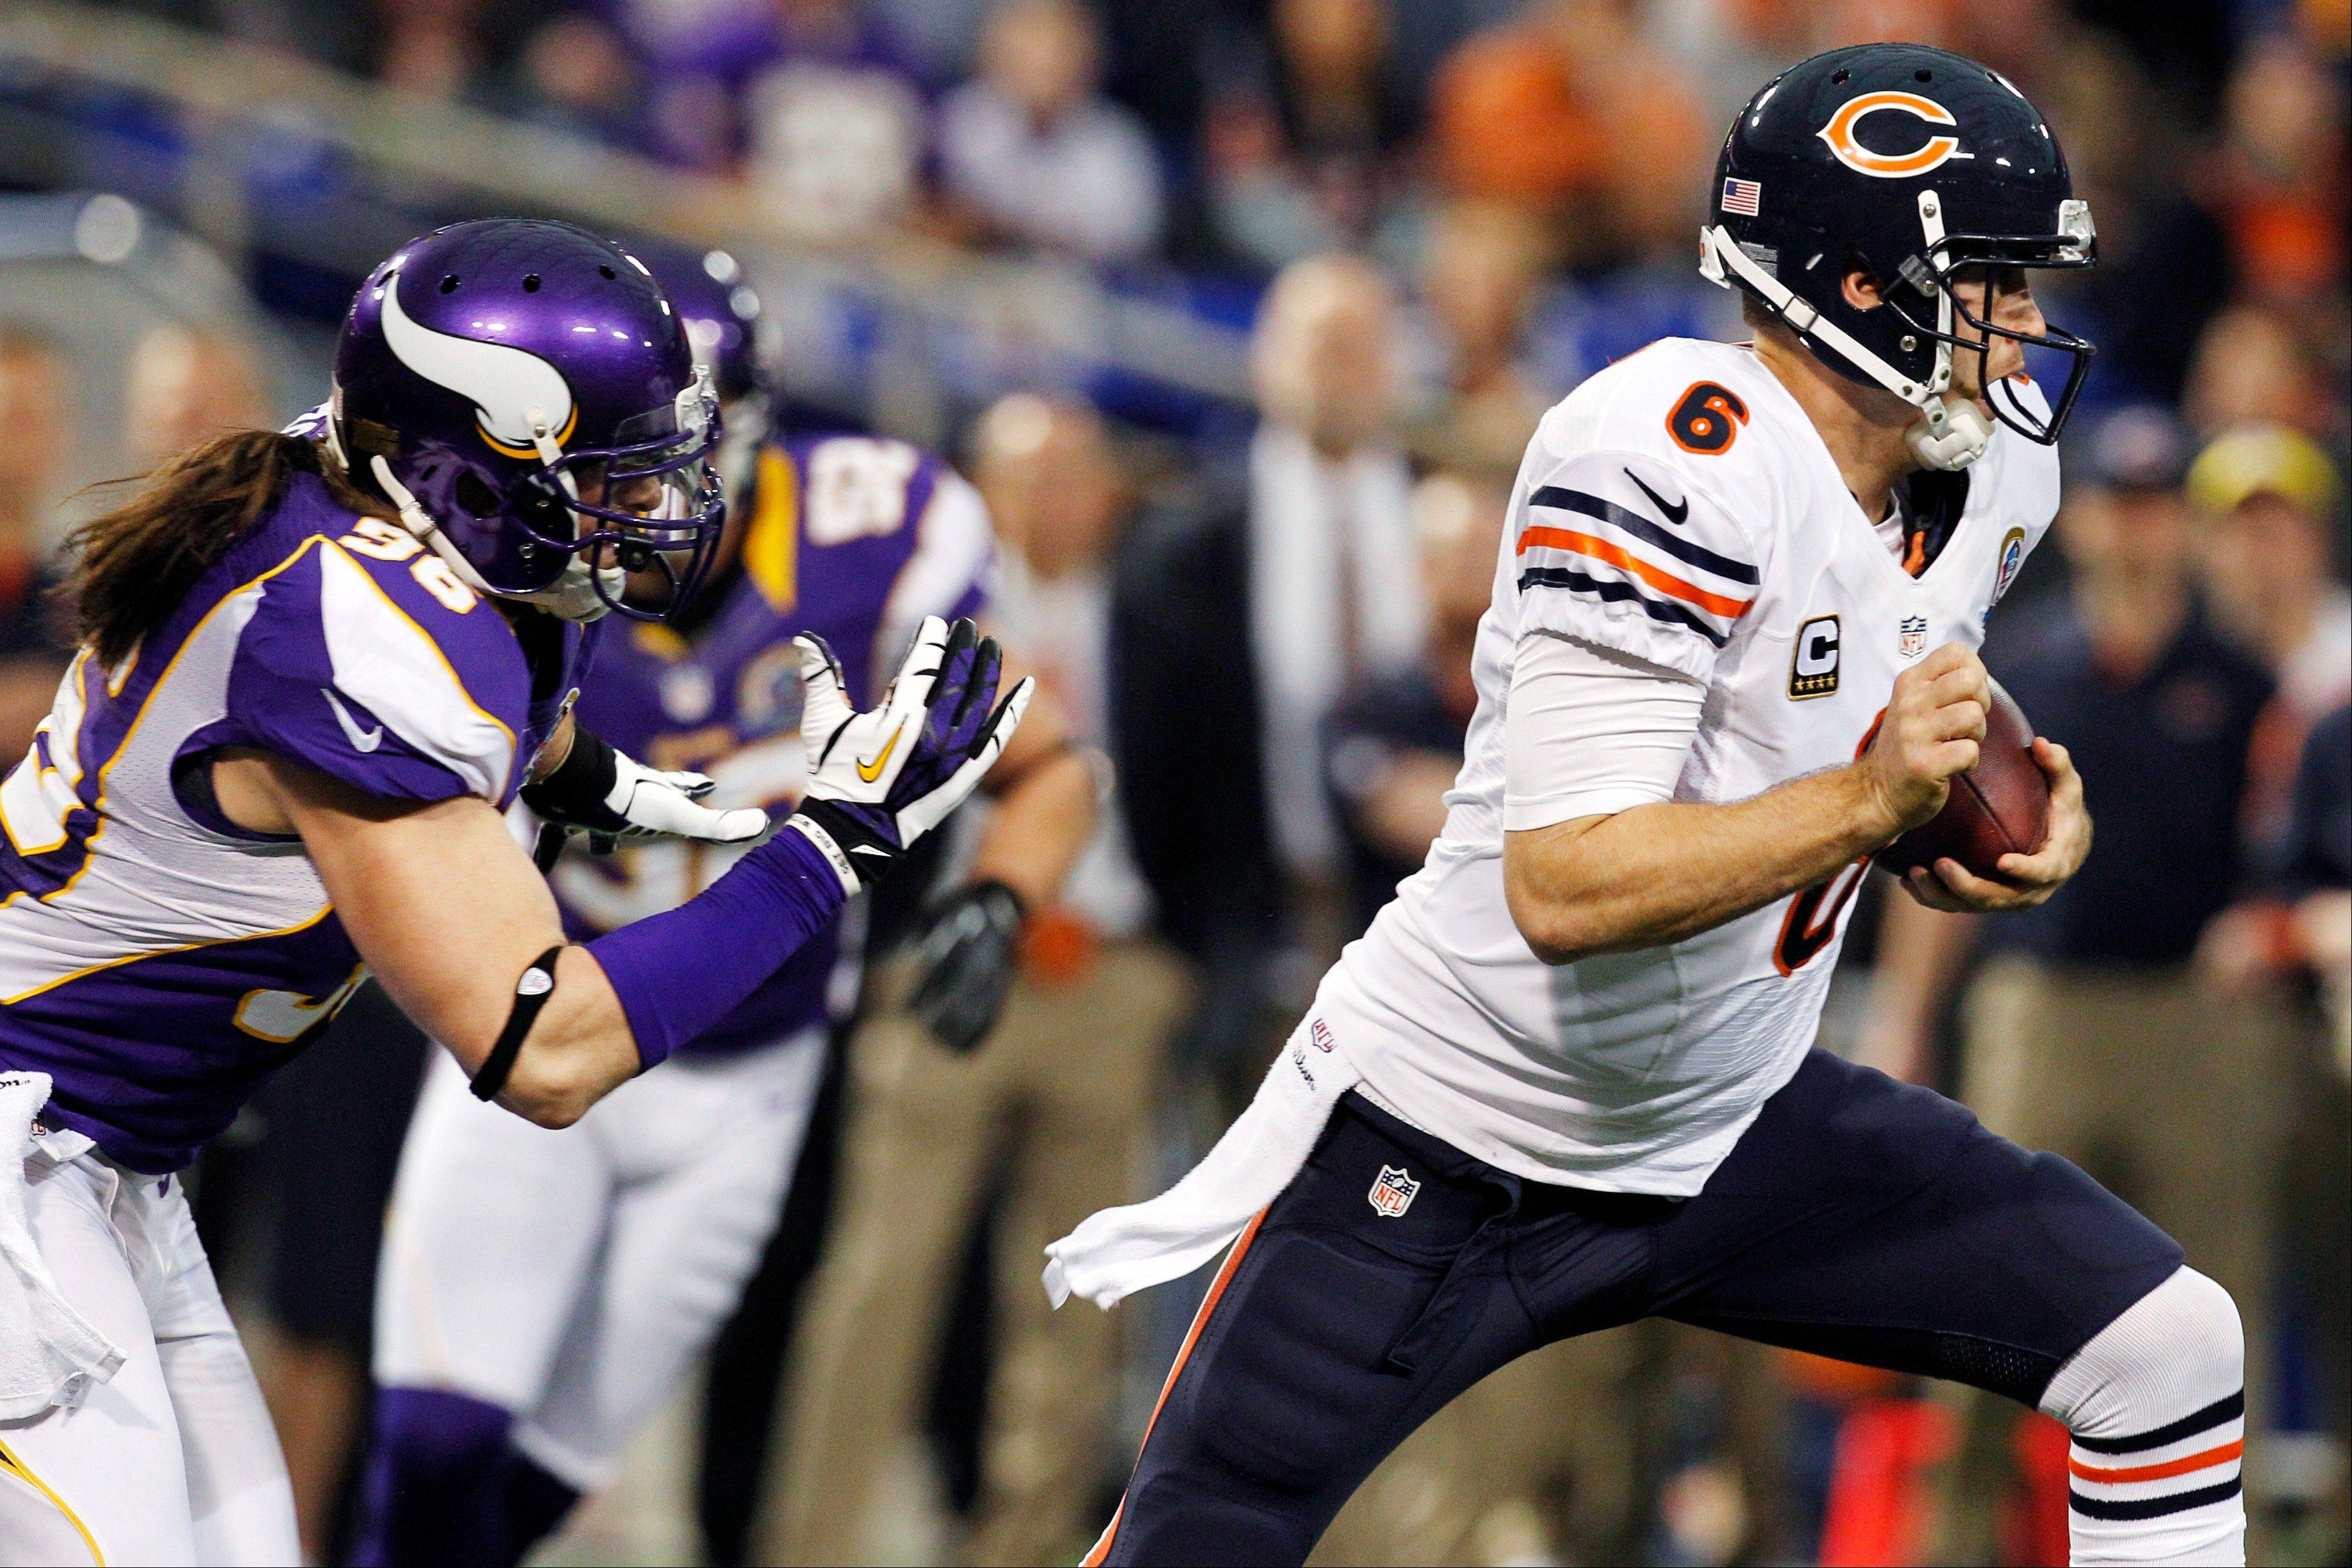 Bears QB Cutler hopes to be back for Pack